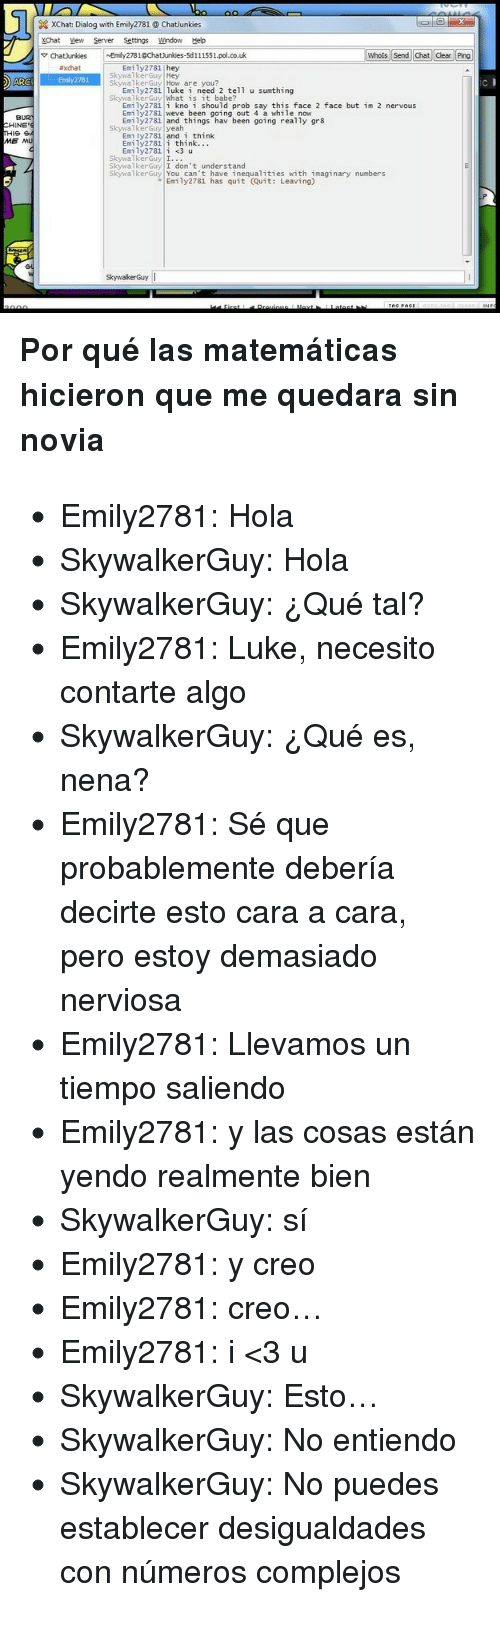 Matematicas: XChat: Dialog with Emily2781@ Chatlunkies  XChat Vew Server Settings Wndow Heb  ChatJunkies~Emly2781@Chatiunies-5d111551.pol.co.uk  Whois Send Chat Clear Ping  Emily2781 hey  #xdat  SkywalkerGuy Hey  ARGI Emly2781  SkywalkerGuy How are you  IC  Emily2781 luke i need 2 tell u sunthing  SkywalkerGuy What is it babe?  Emily2781i kno i should prob say this face 2 face but im 2 nervous  Emi ly2781 weve been going out 4 a while now  Emily2781 and things hav been going really gr8  BUR  CHINE'  SkywalkerGuy yeah  Em ly2781 and i think  Emily2781i think...  ME MU  SkywalkerGuy I.  SkywalkerGuy I don't understand  SkywalkerGuy You can't have inequalities with imaginary numbers  Emily2781 has quit (Quit: Leaving)  SkywakerGuy <div><strong>Por qué las matemáticas hicieron que me quedara sin novia</strong></div> <ul><li>Emily2781: Hola</li> <li>SkywalkerGuy: Hola</li> <li>SkywalkerGuy: ¿Qué tal?</li> <li>Emily2781: Luke, necesito contarte algo</li> <li>SkywalkerGuy: ¿Qué es, nena?</li> <li>Emily2781: Sé que probablemente debería decirte esto cara a cara, pero estoy demasiado nerviosa</li> <li>Emily2781: Llevamos un tiempo saliendo</li> <li>Emily2781: y las cosas están yendo realmente bien</li> <li>SkywalkerGuy: sí</li> <li>Emily2781: y creo</li> <li>Emily2781: creo…</li> <li>Emily2781: i &lt;3 u</li> <li>SkywalkerGuy: Esto…</li> <li>SkywalkerGuy: No entiendo</li> <li>SkywalkerGuy: No puedes establecer desigualdades con números complejos</li> </ul>